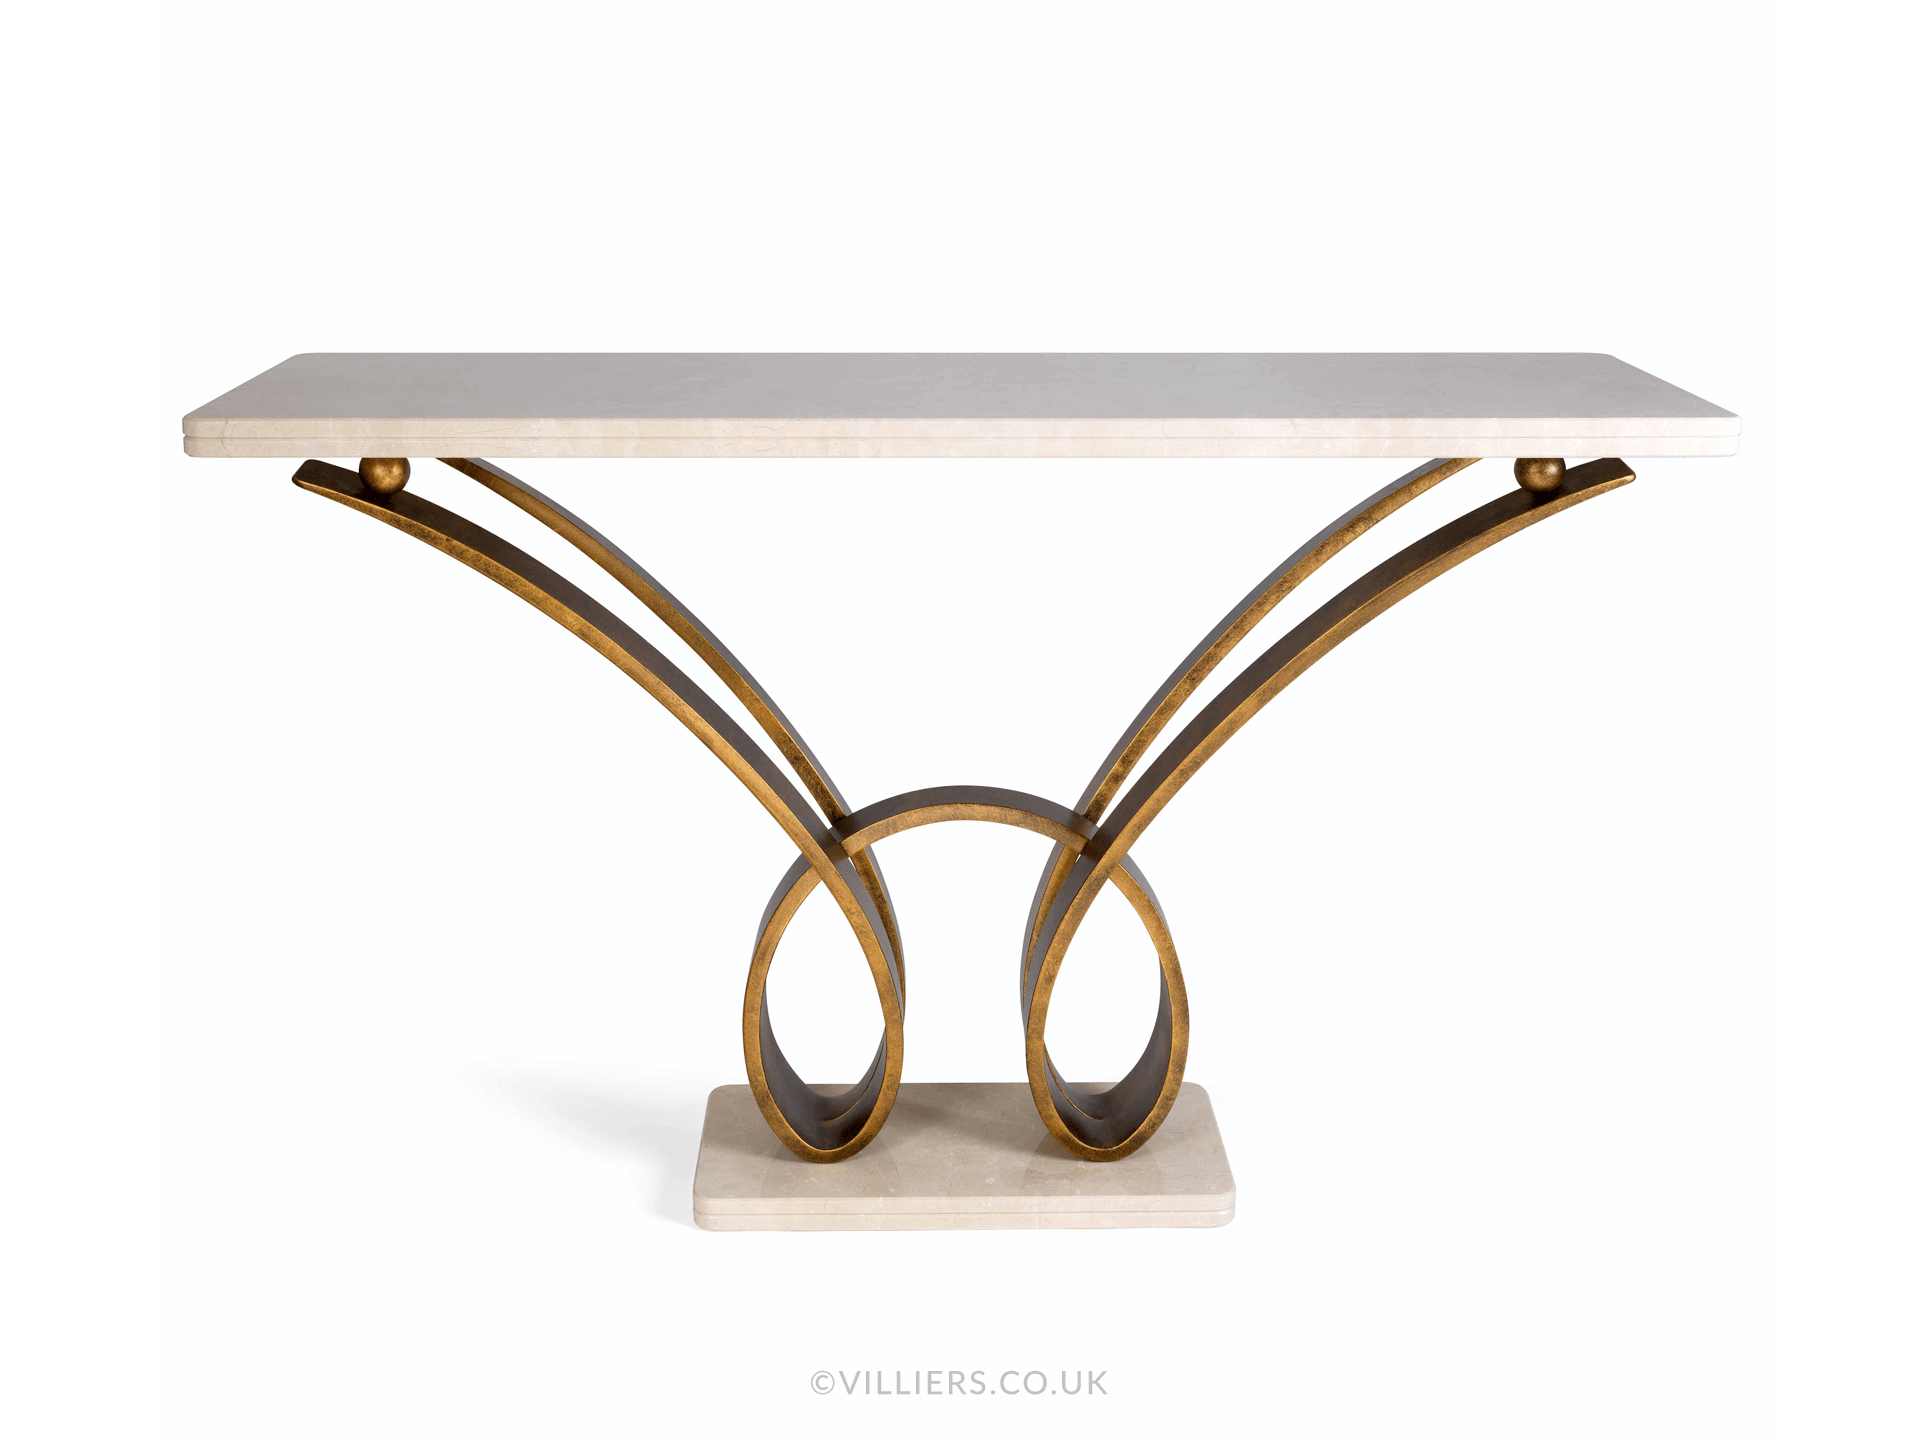 Byron Freestanding Console Table